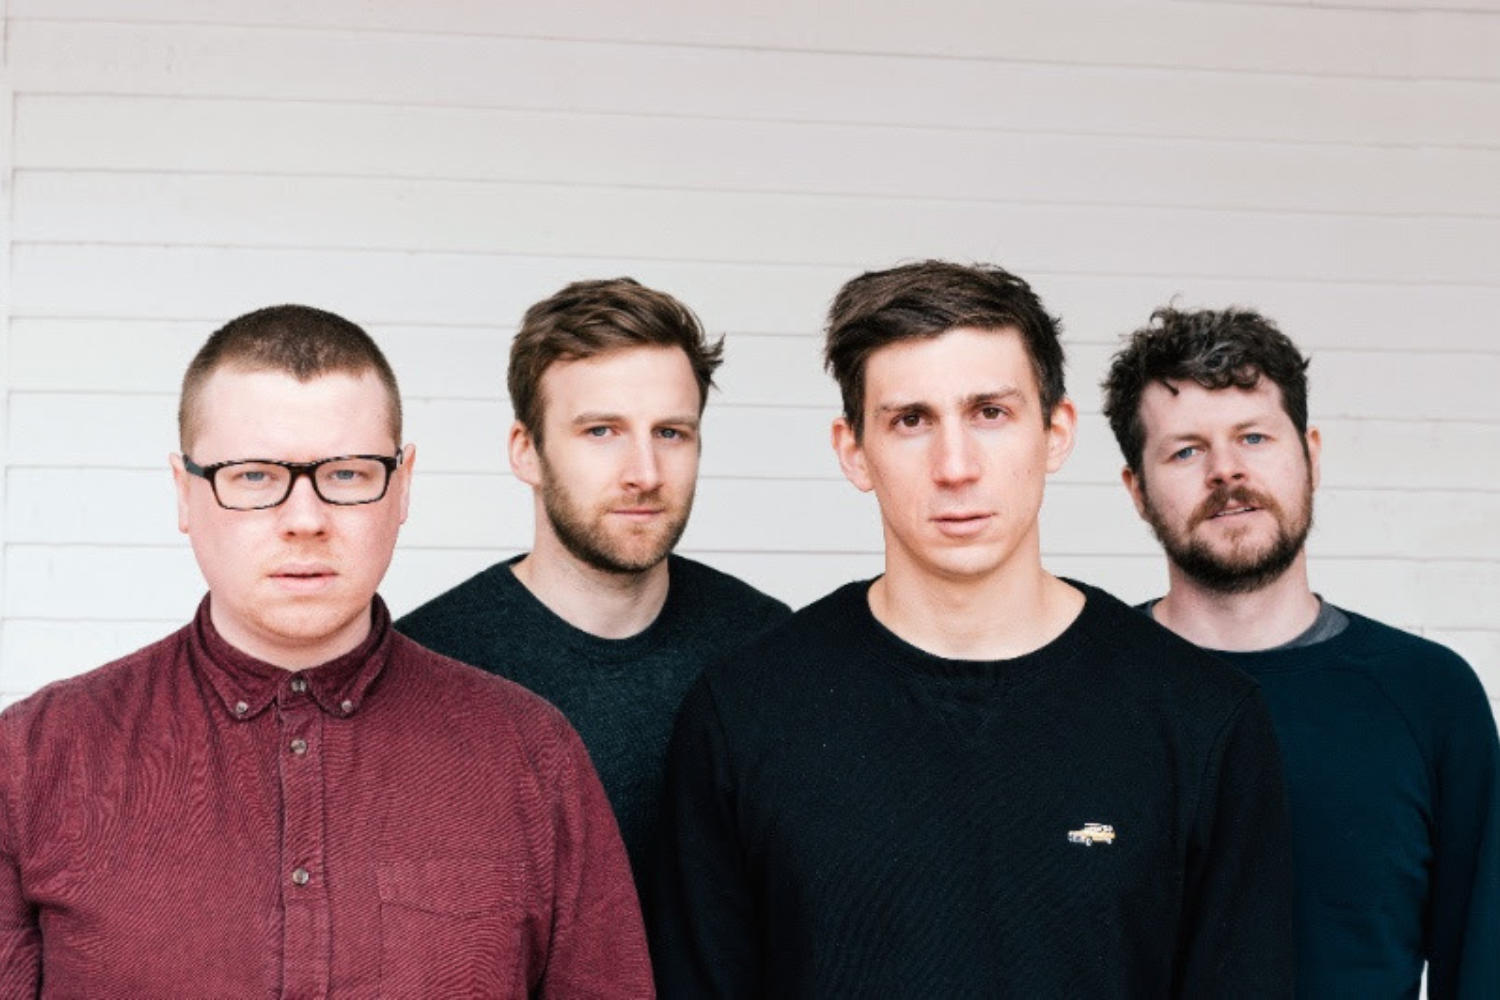 We Were Promised Jetpacks announce new album 'The More I Sleep The Less I Dream', share first track 'Hanging In'